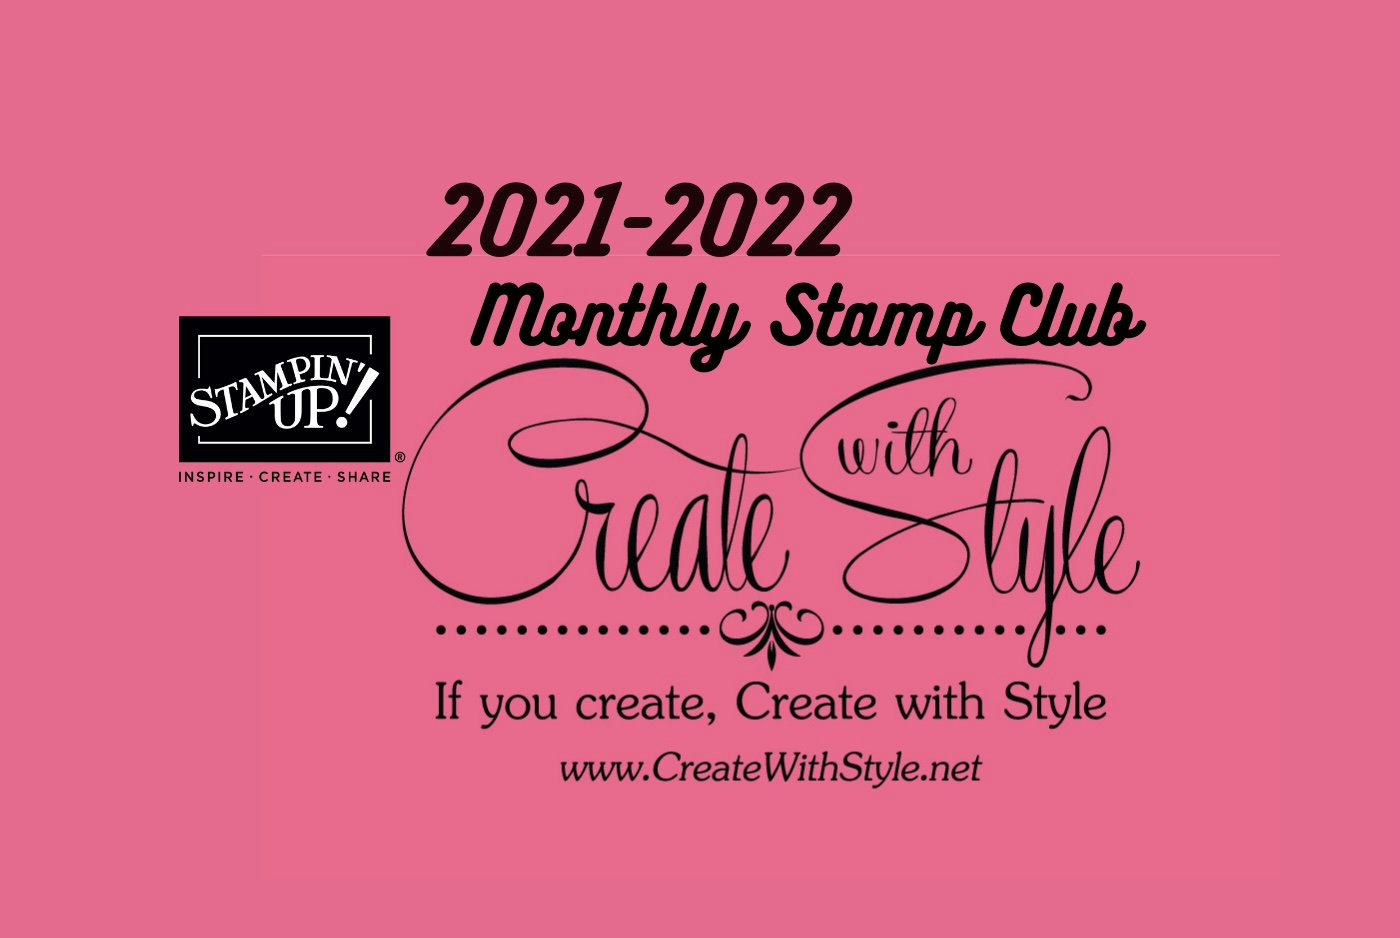 2021-2022 Monthly Stamp Club